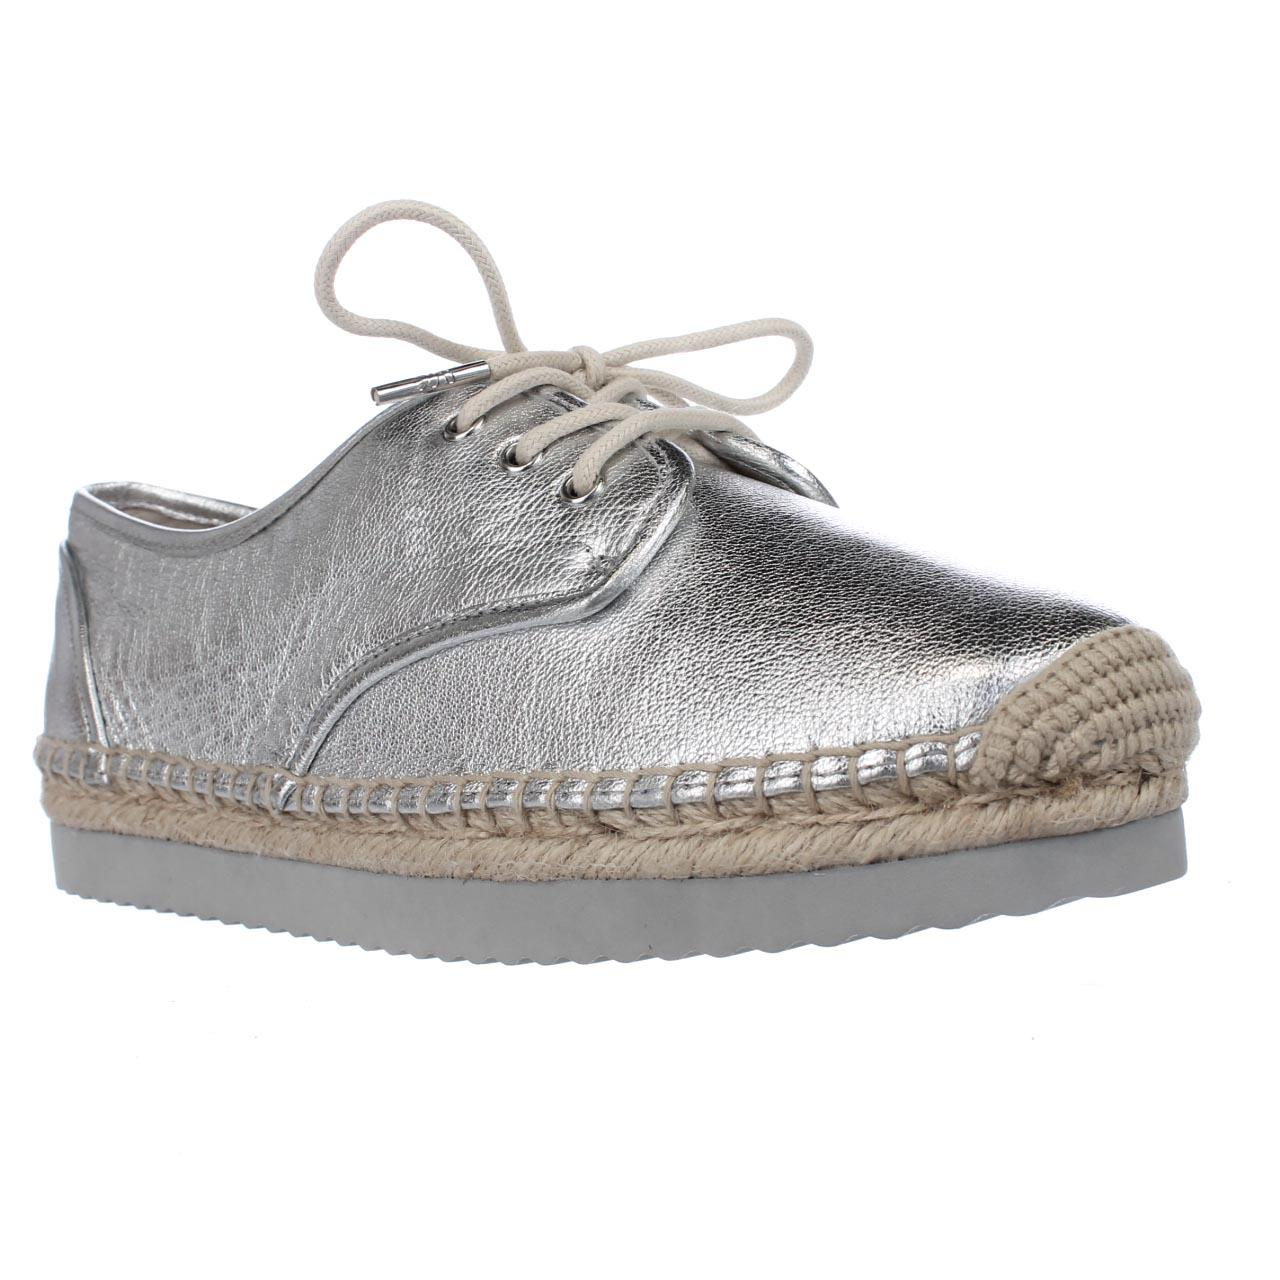 Michael Michael Kors - Damen - Hastings Lace Up - Espadrilles - blau tks1kAicn1